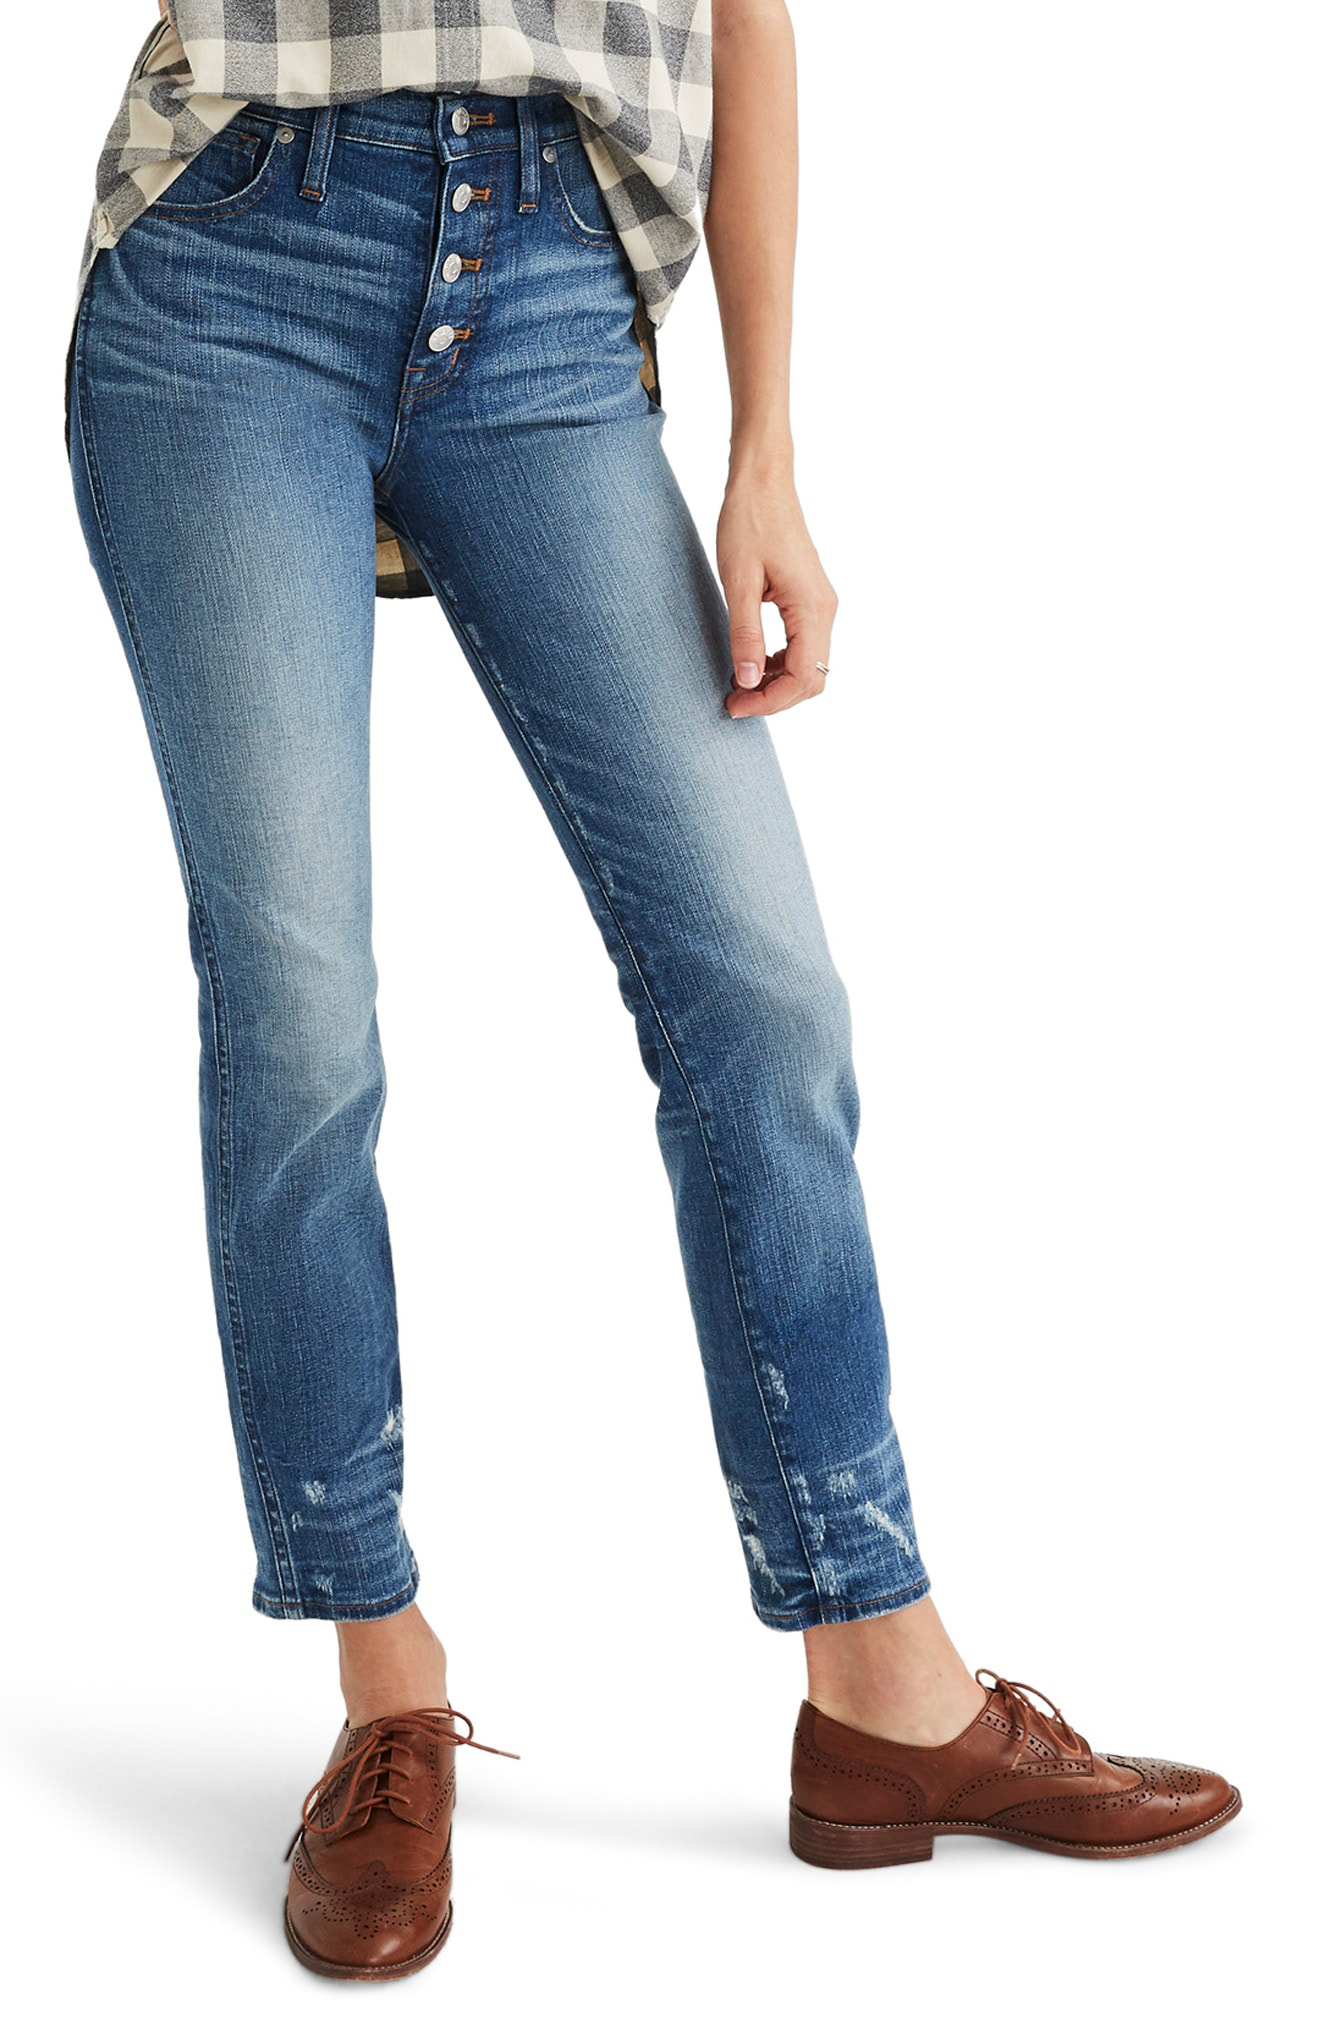 535746c0428e4e Madewell Distressed Button Front High Waist Slim Straight Jeans In Caroline